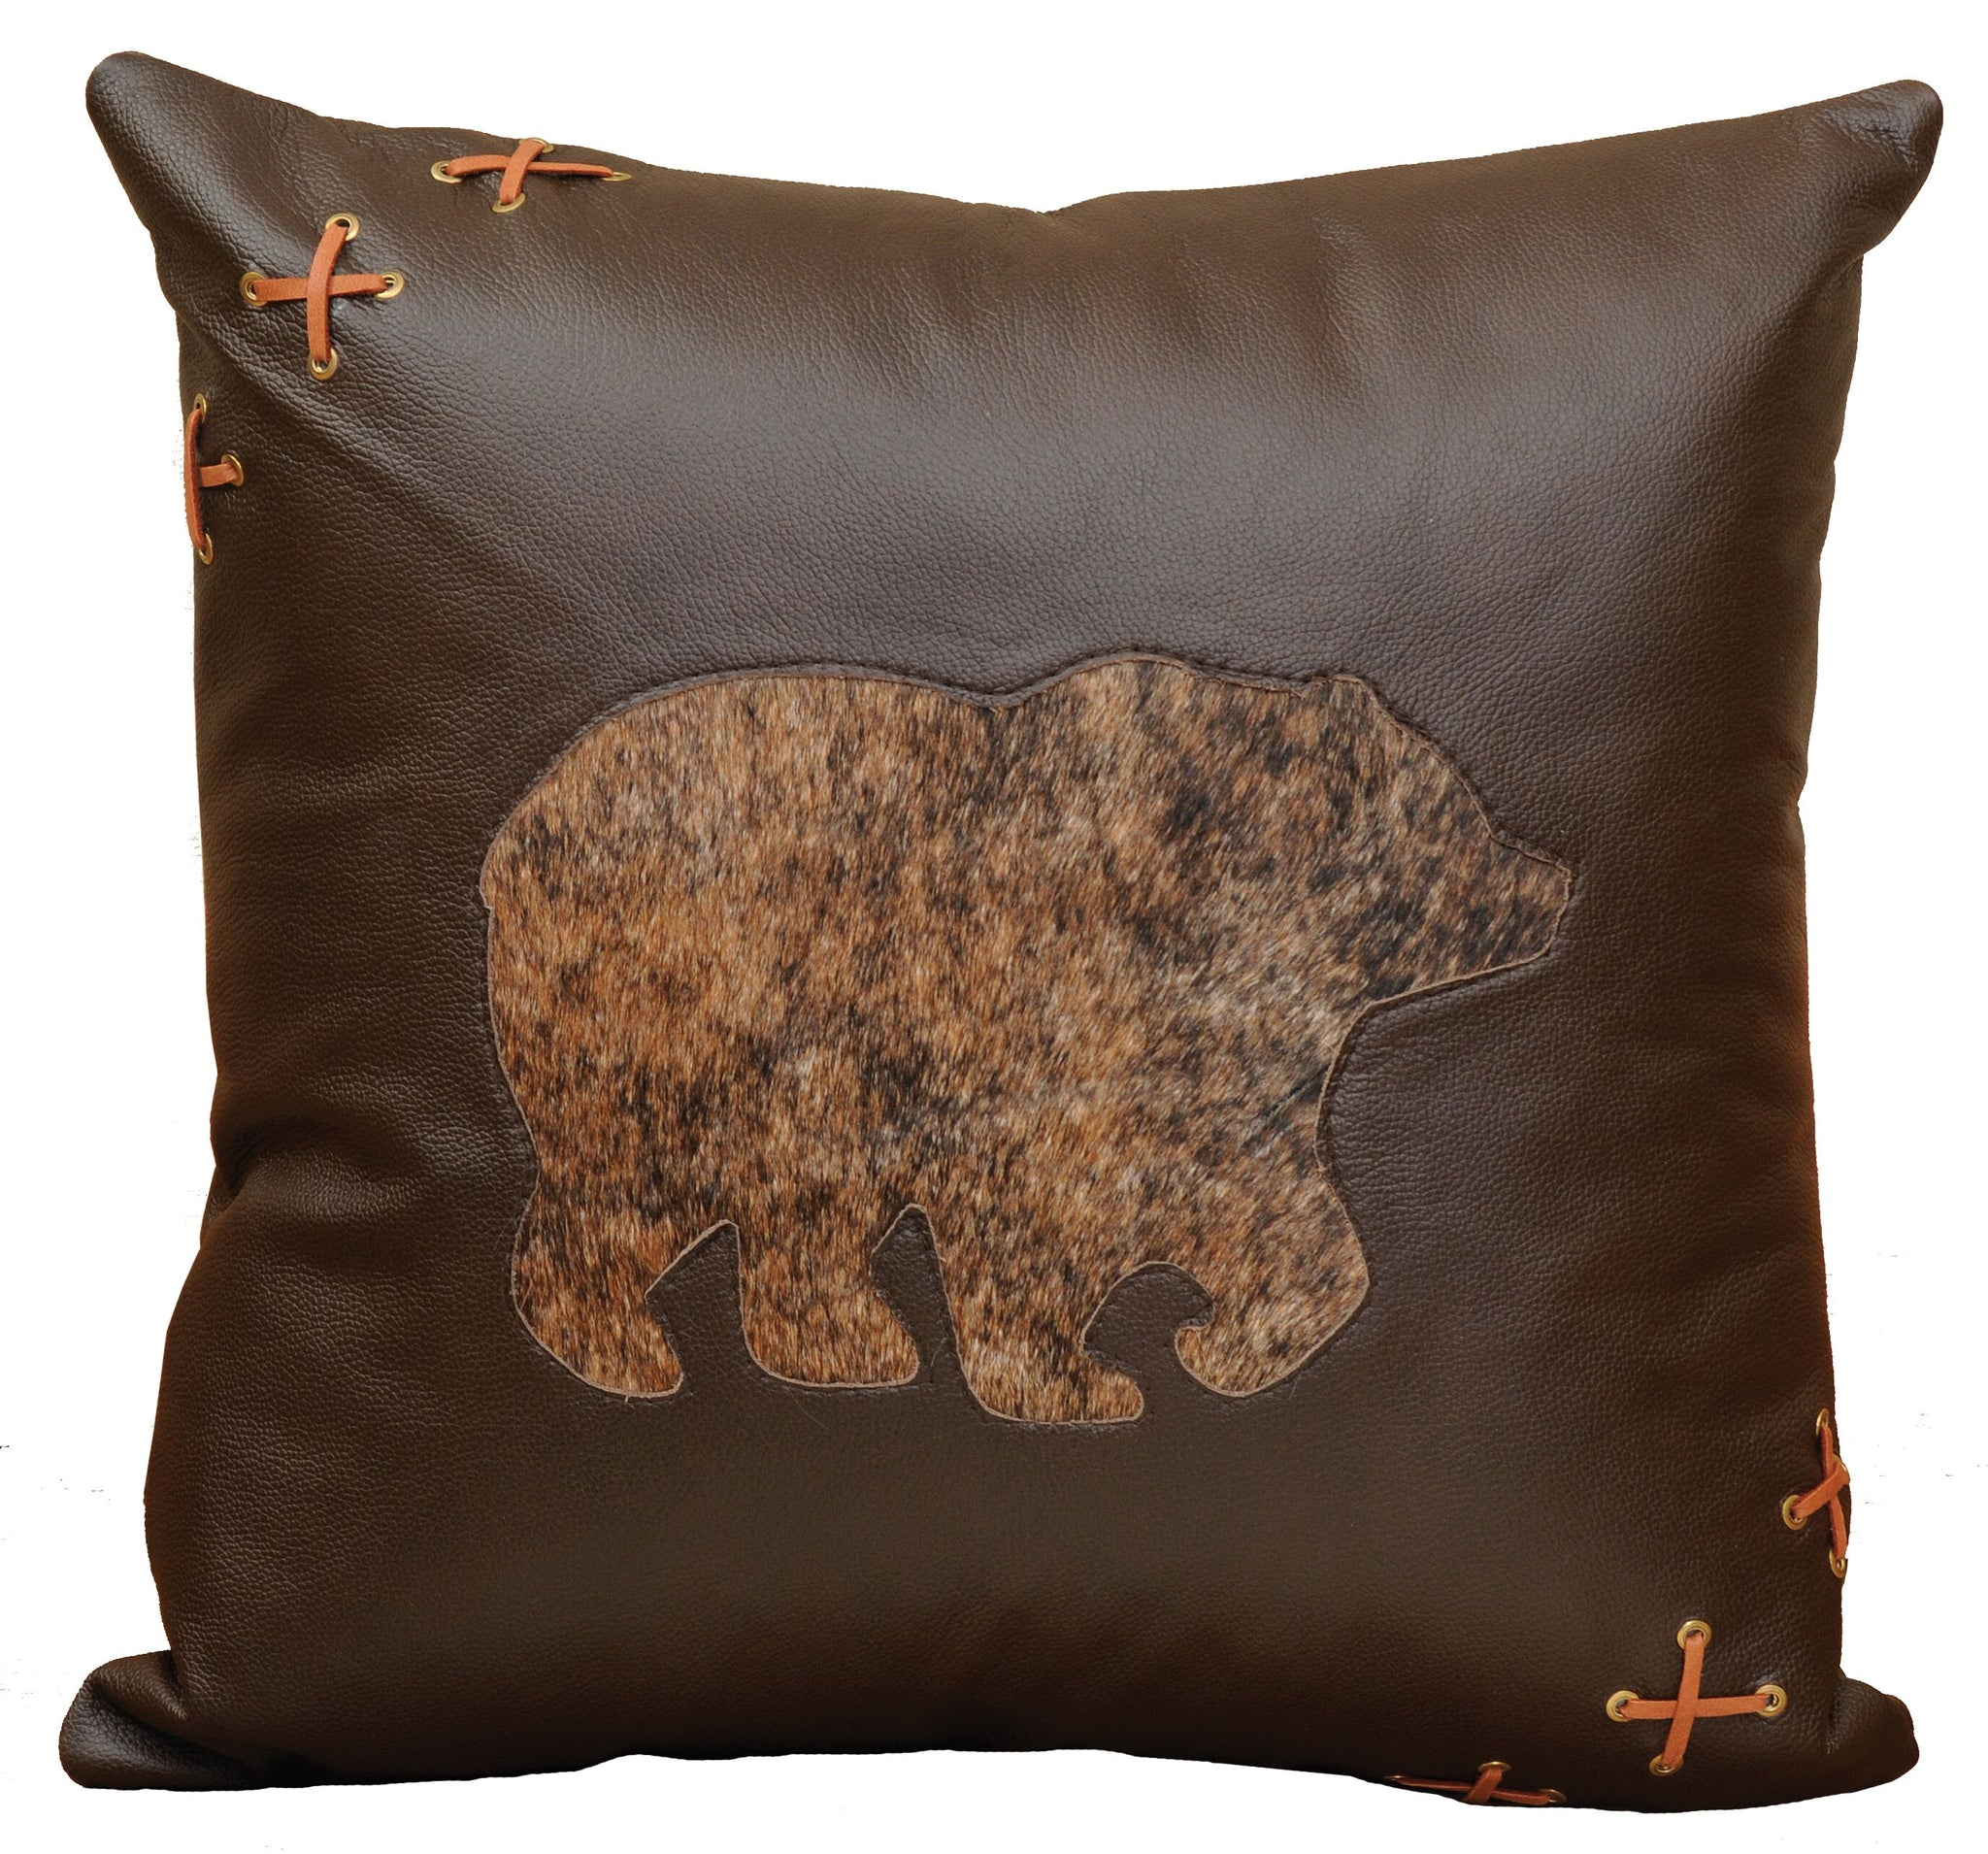 Leather Pillows Wooded River WD1558 - unique linens online